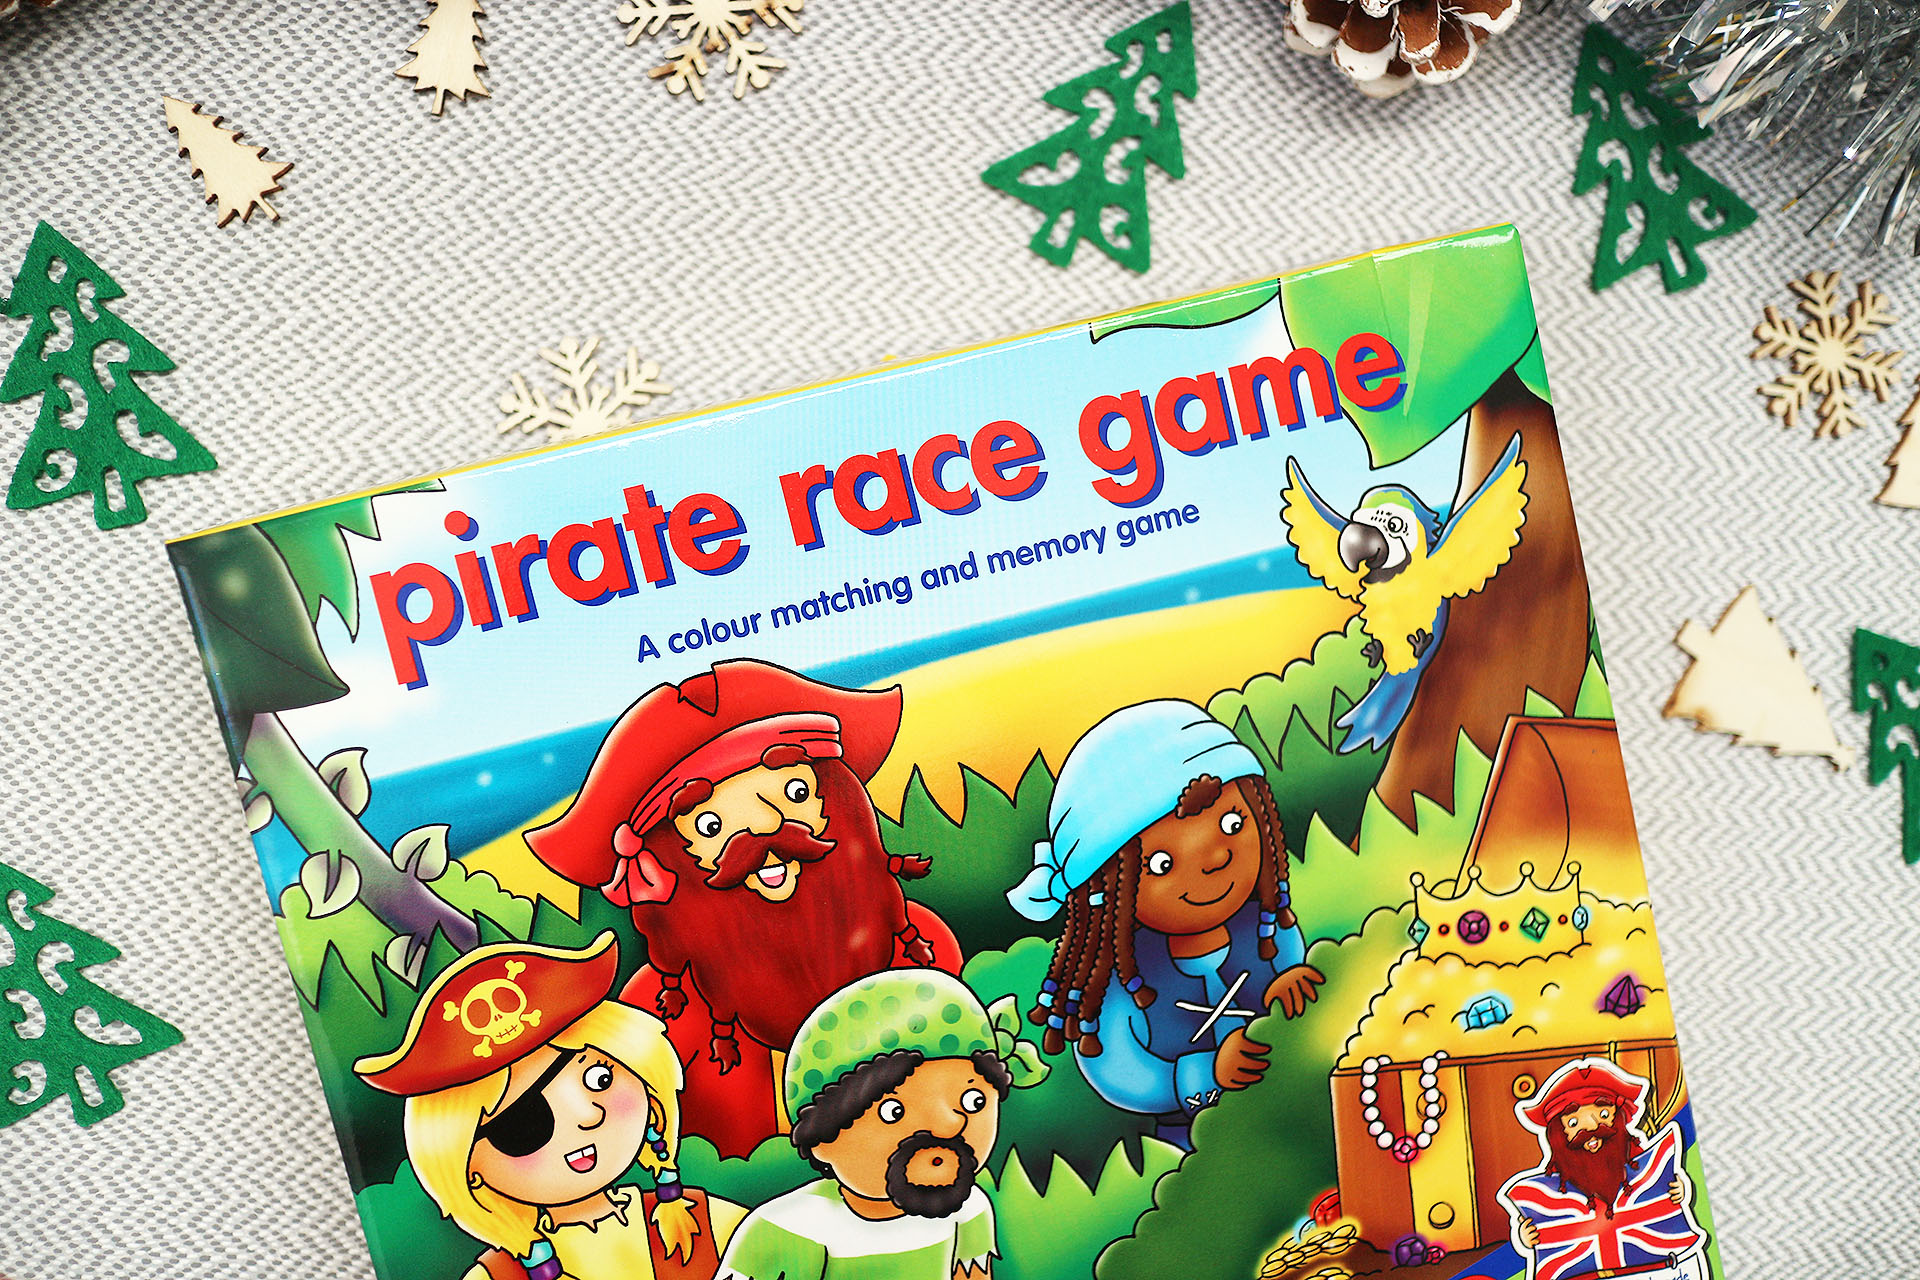 Pirate race game - Christmas gift guide for kids